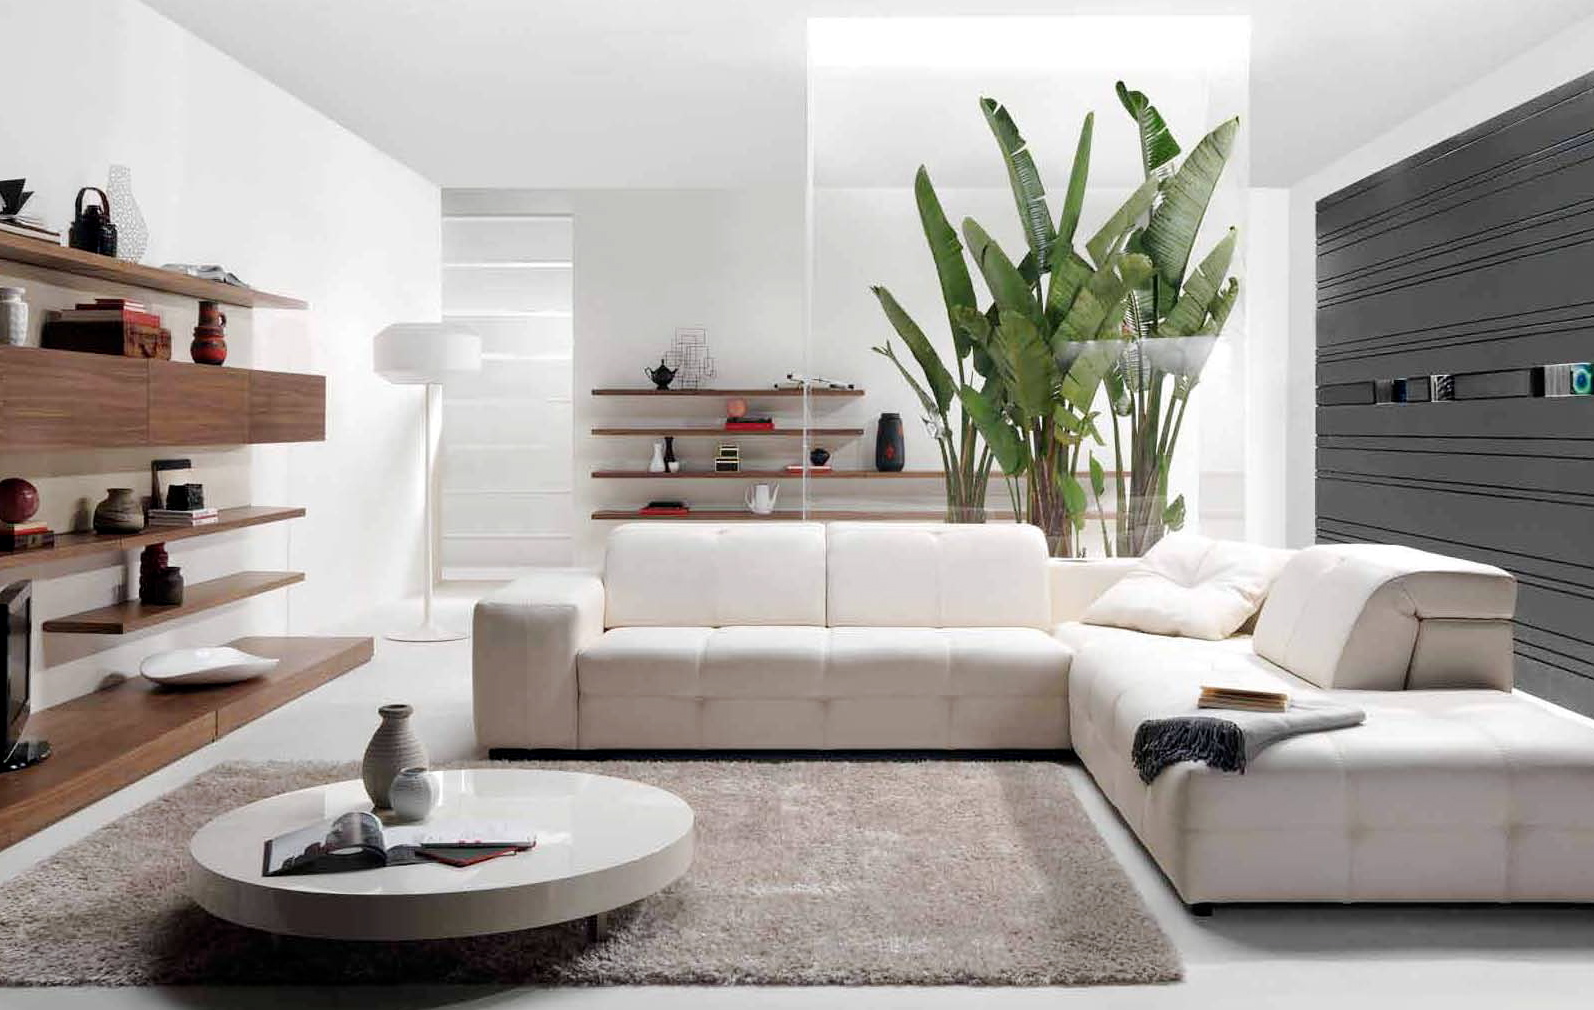 Spacious Modern Home Interior Design For Living Room : Stylish Bed Sofa Round Coffee Table Designer Interiors